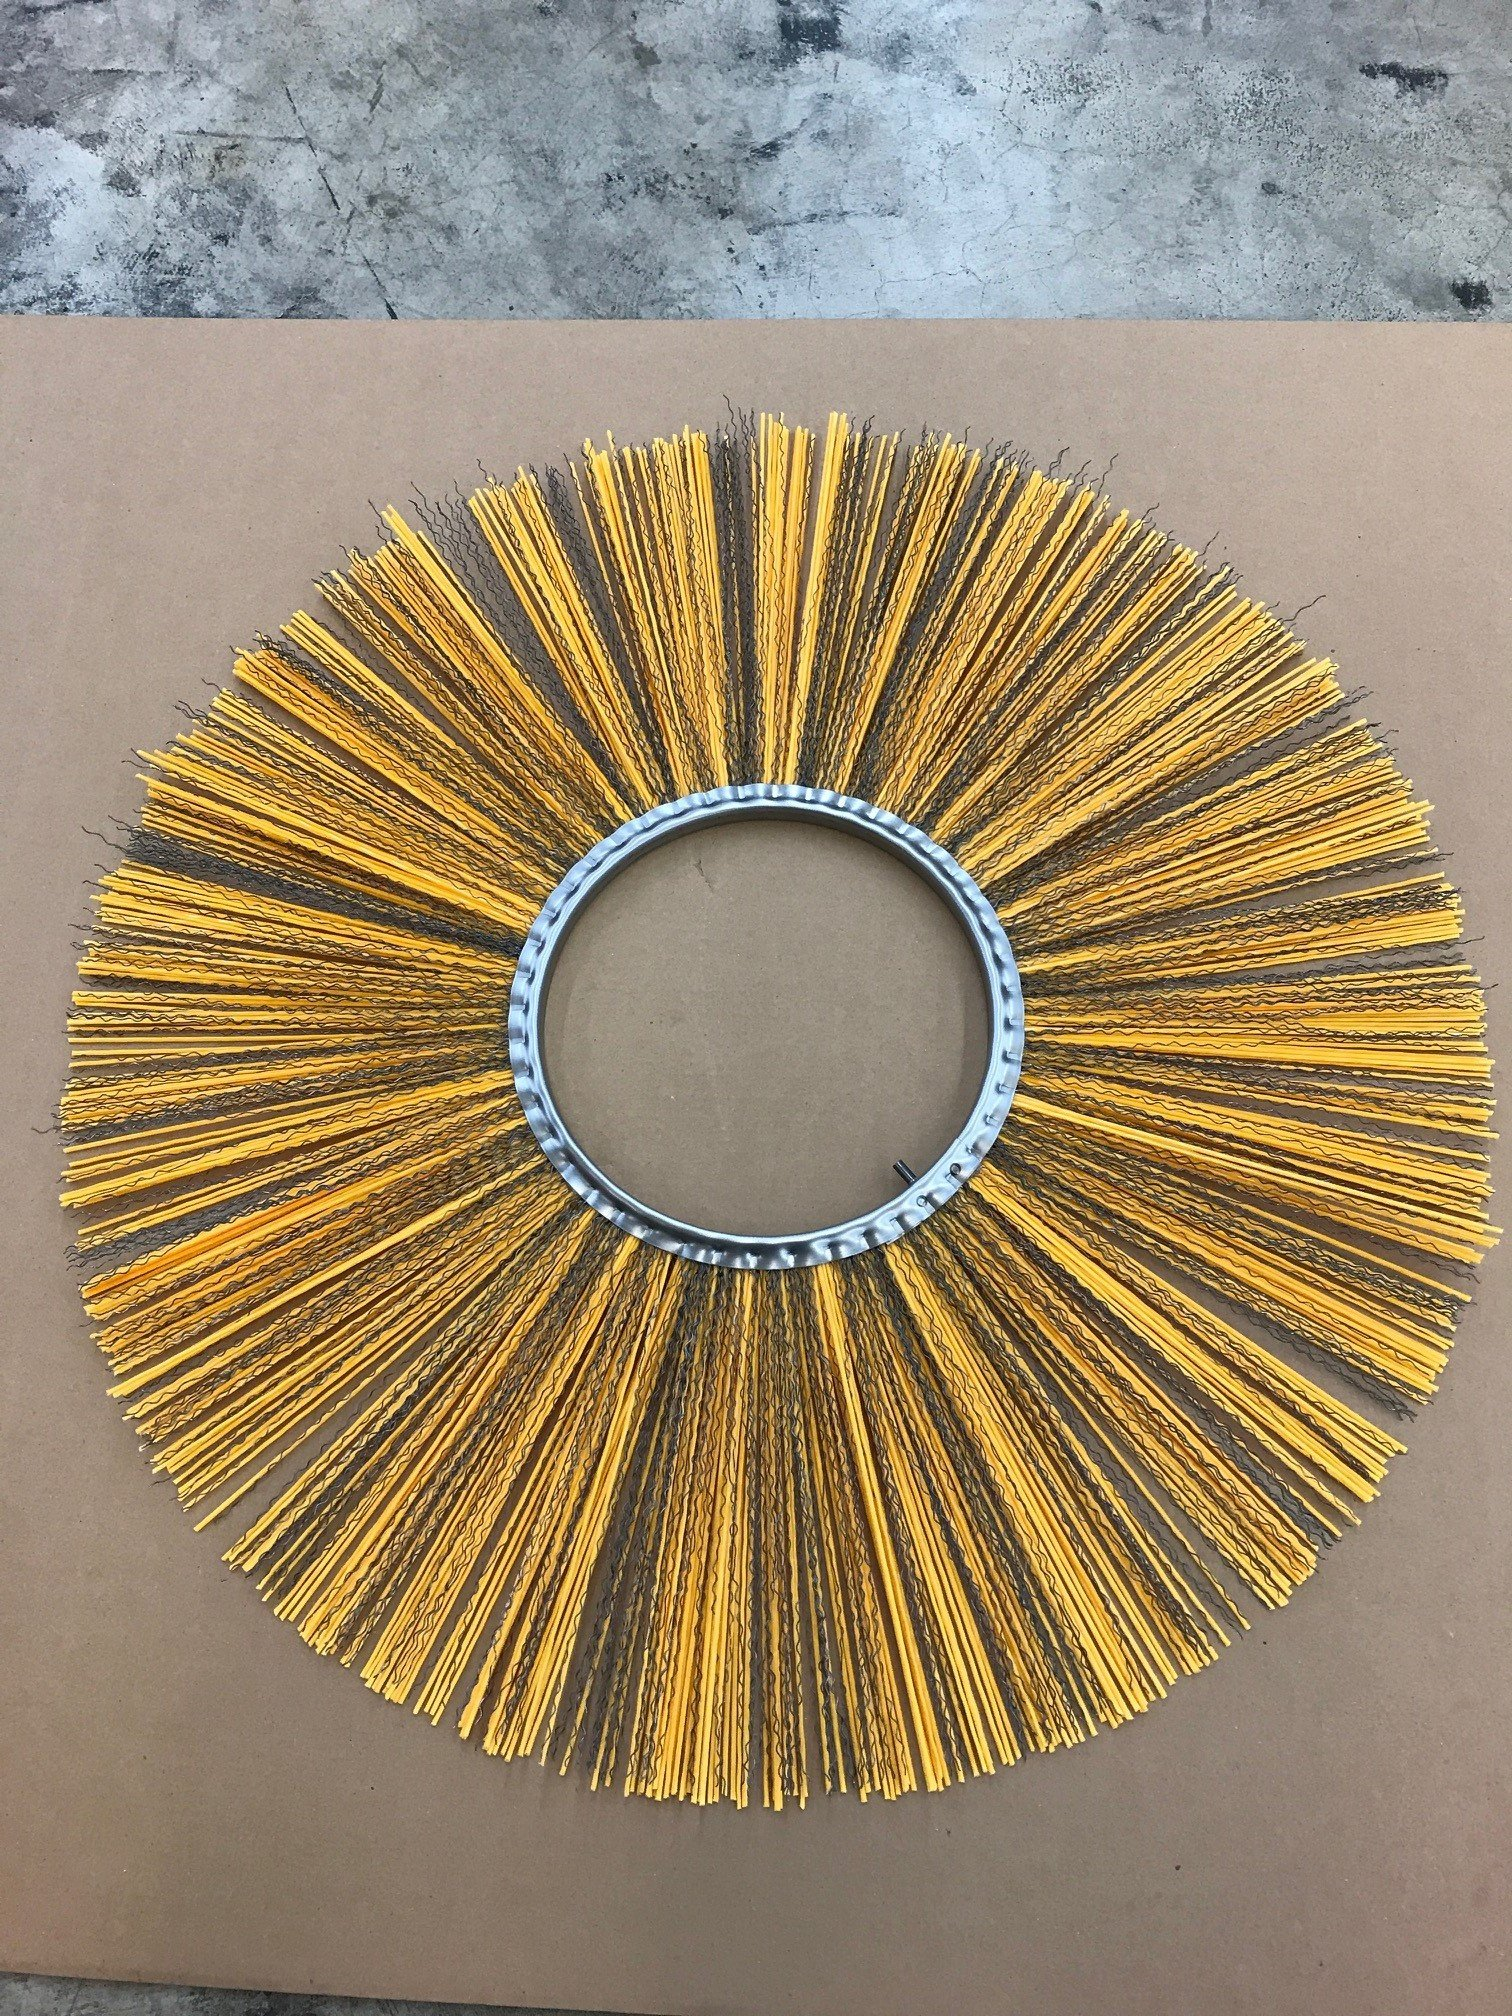 M-B Tough Brush - 32'' x 10'' Flat Combo (Poly & Wire) Wafers with Spacers. Replacement Brushes for Various Sweeping Brooms and Machines.